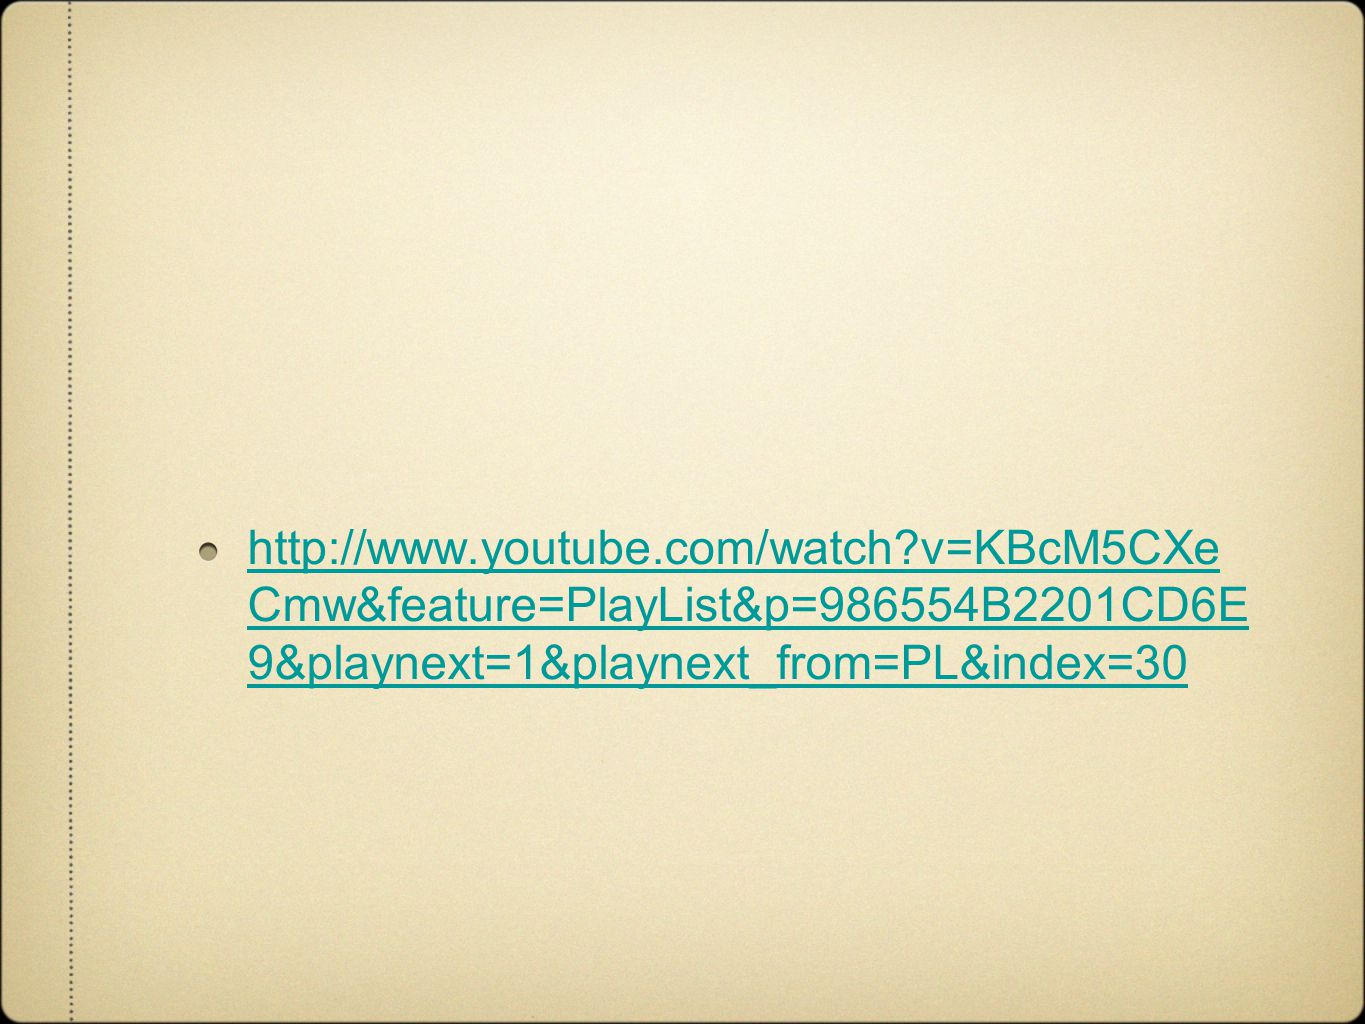 http://www.youtube.com/watch?v=KBcM5CXe Cmw&feature=PlayList&p=986554B2201CD6E 9&playnext=1&playnext_from=PL&index=30